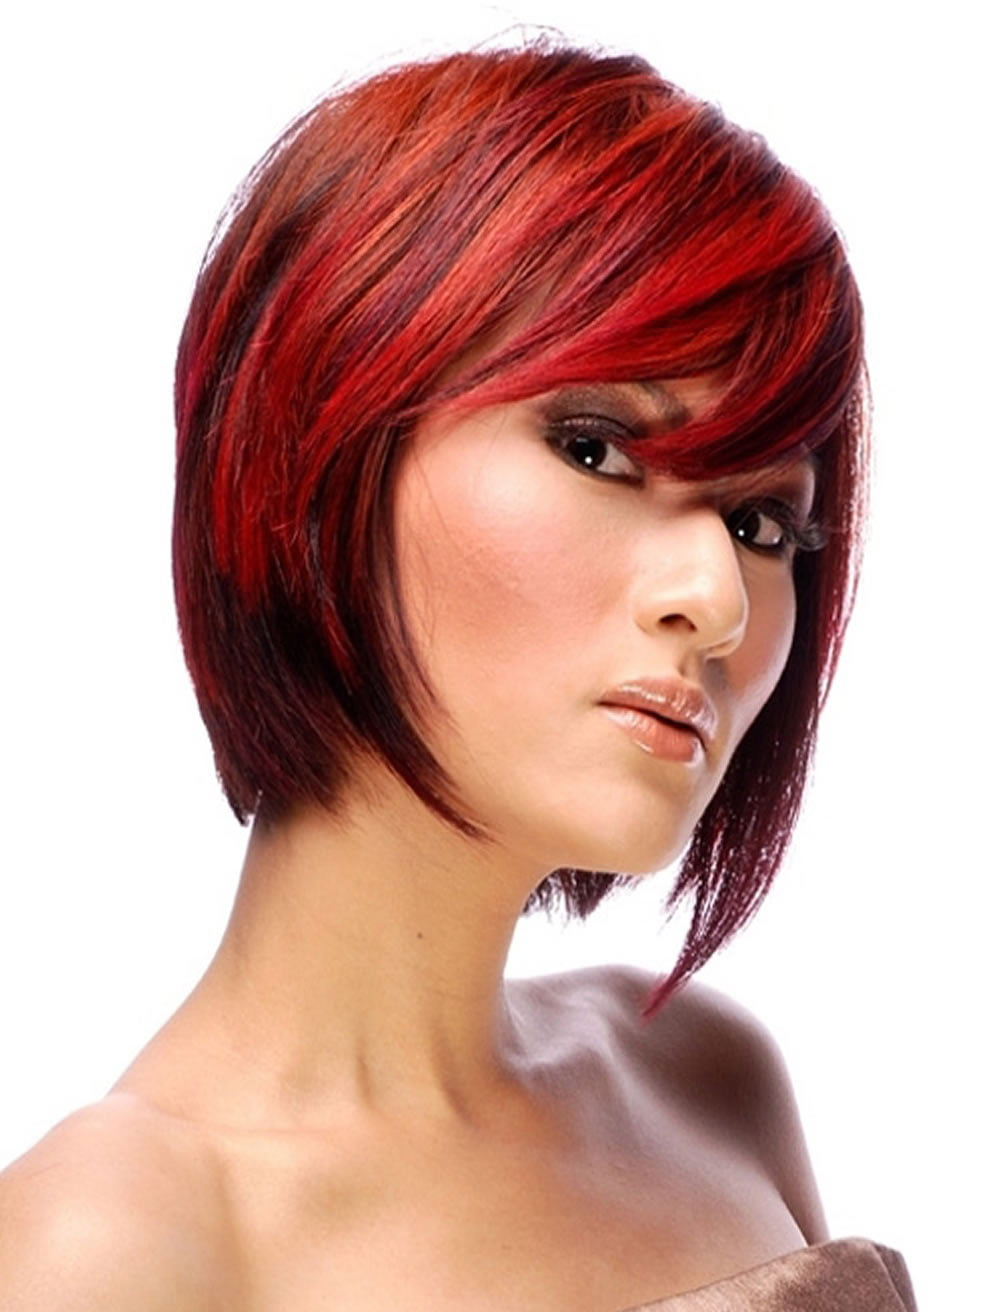 new hair color styles hair color for hairstyles 27 cool haircut 1692